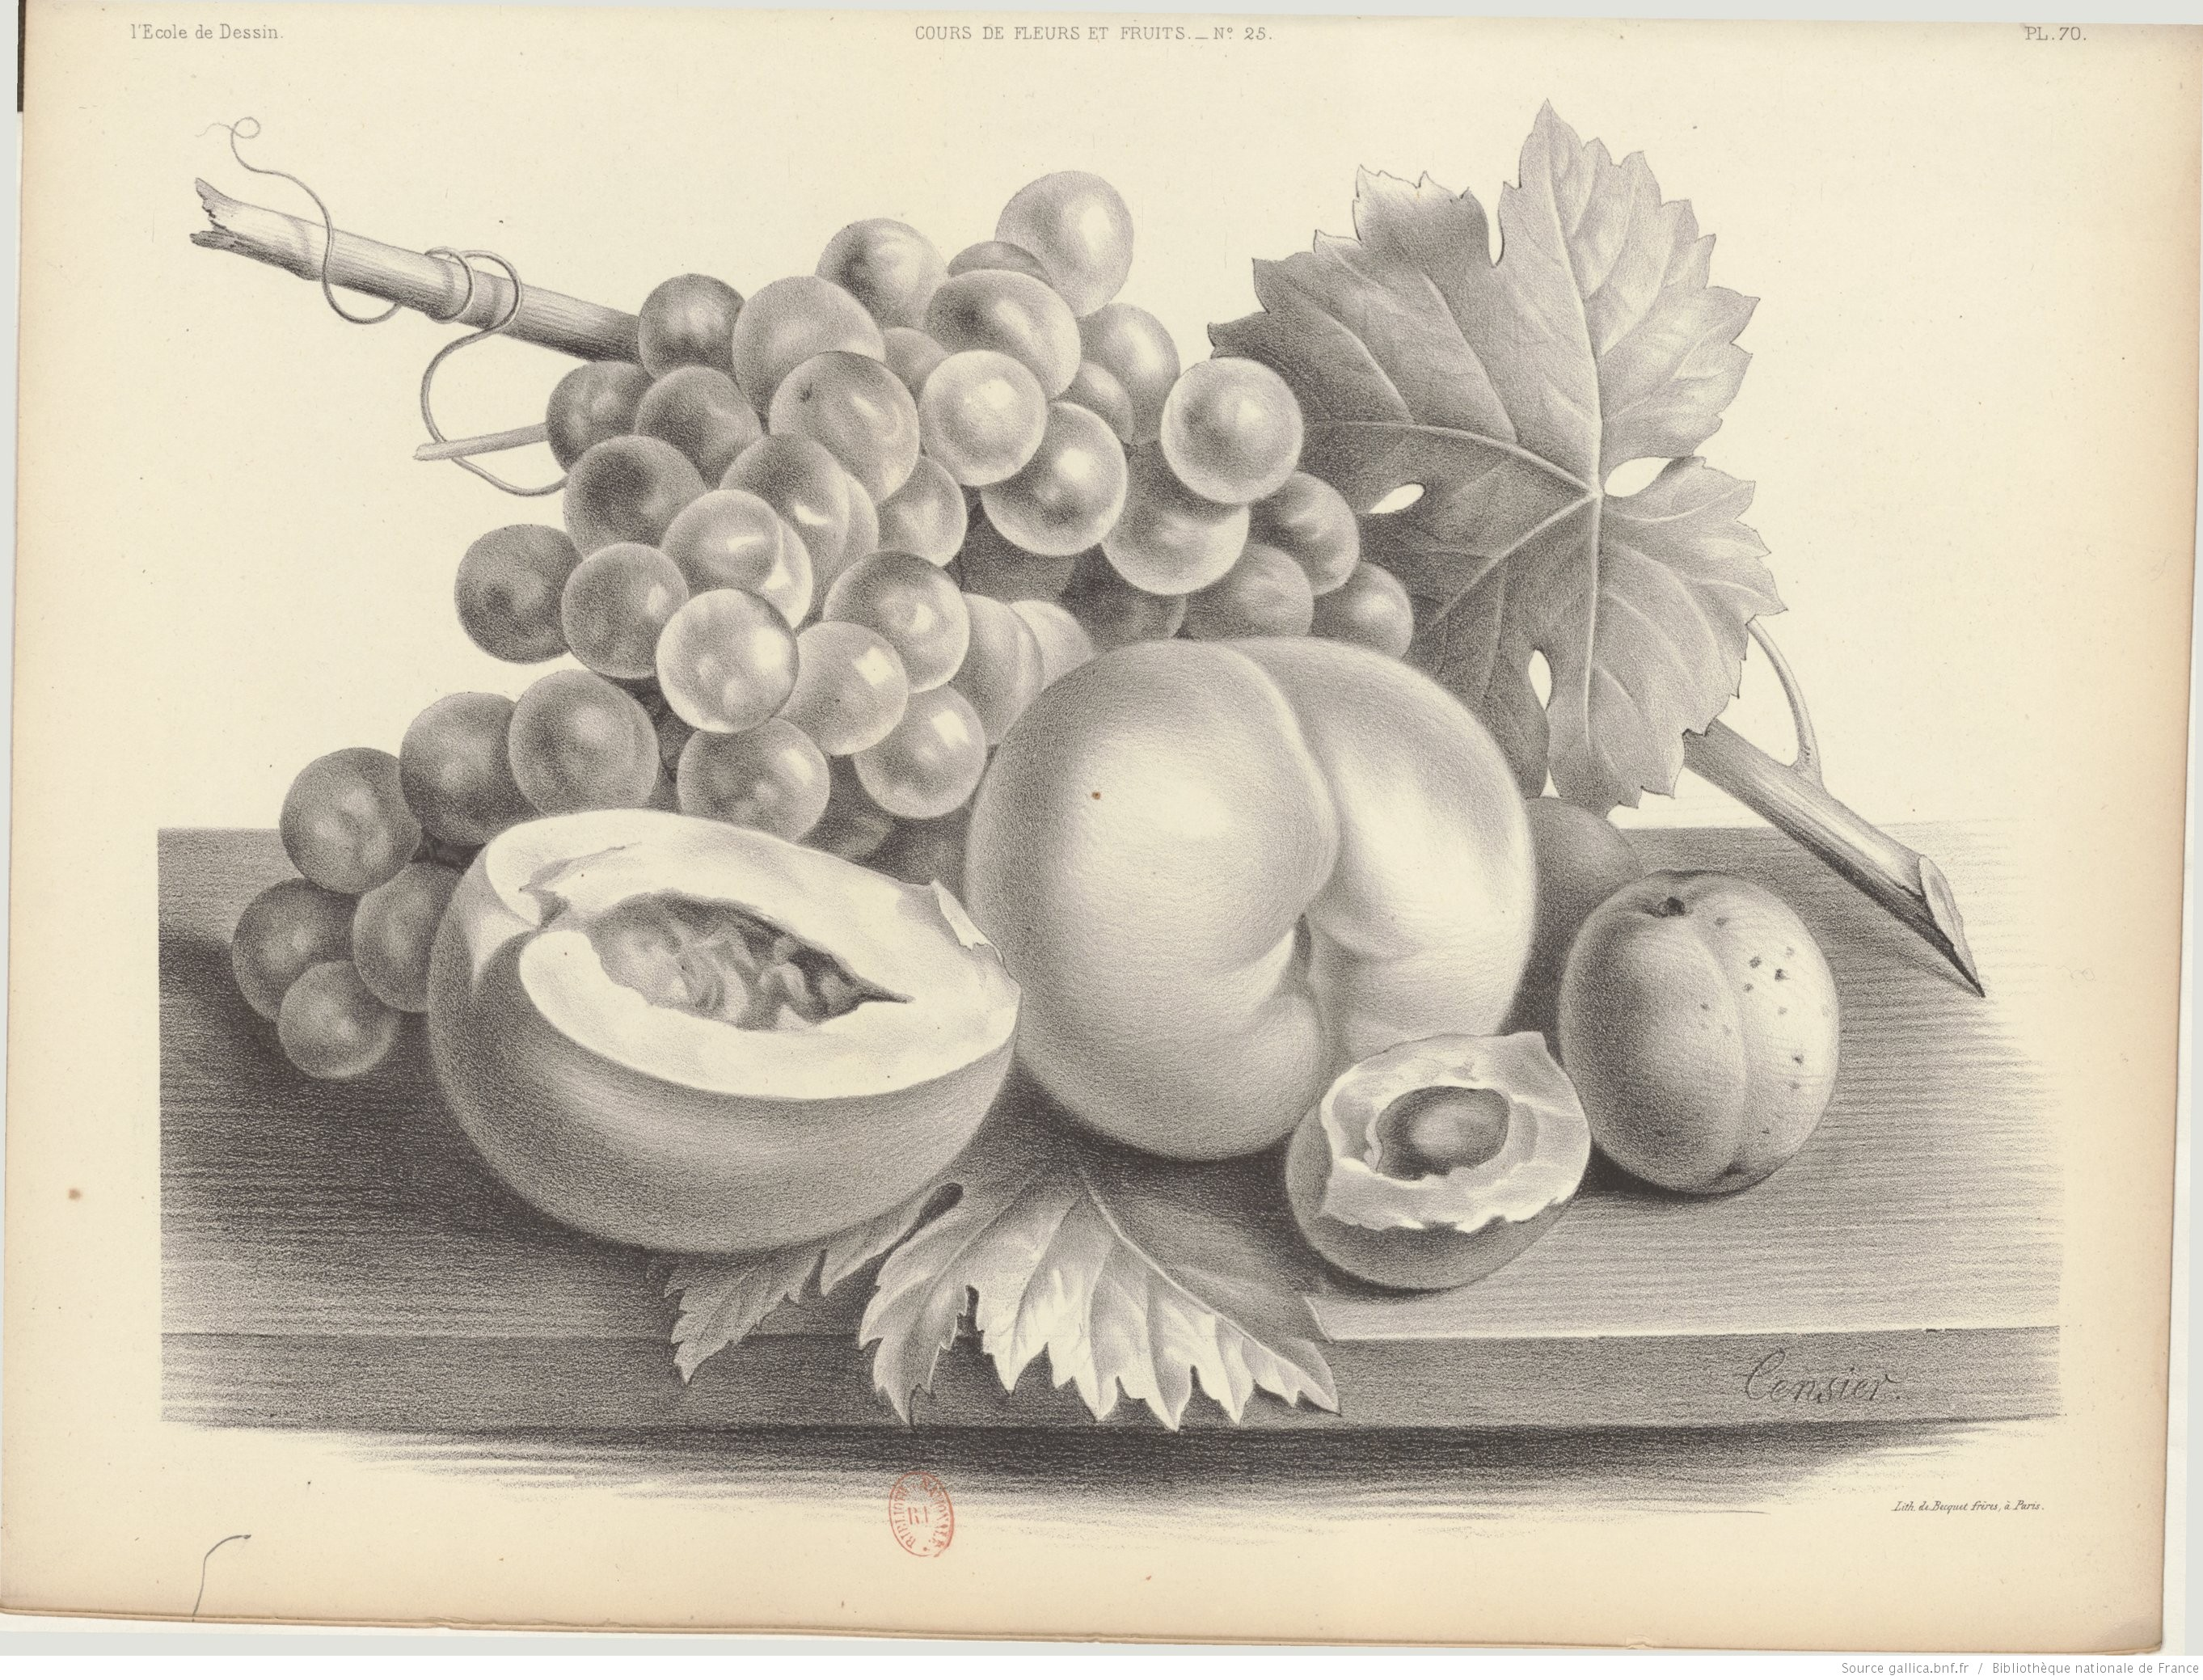 Nature morte de fruits dessin ou peinture - Dessin de nature morte ...